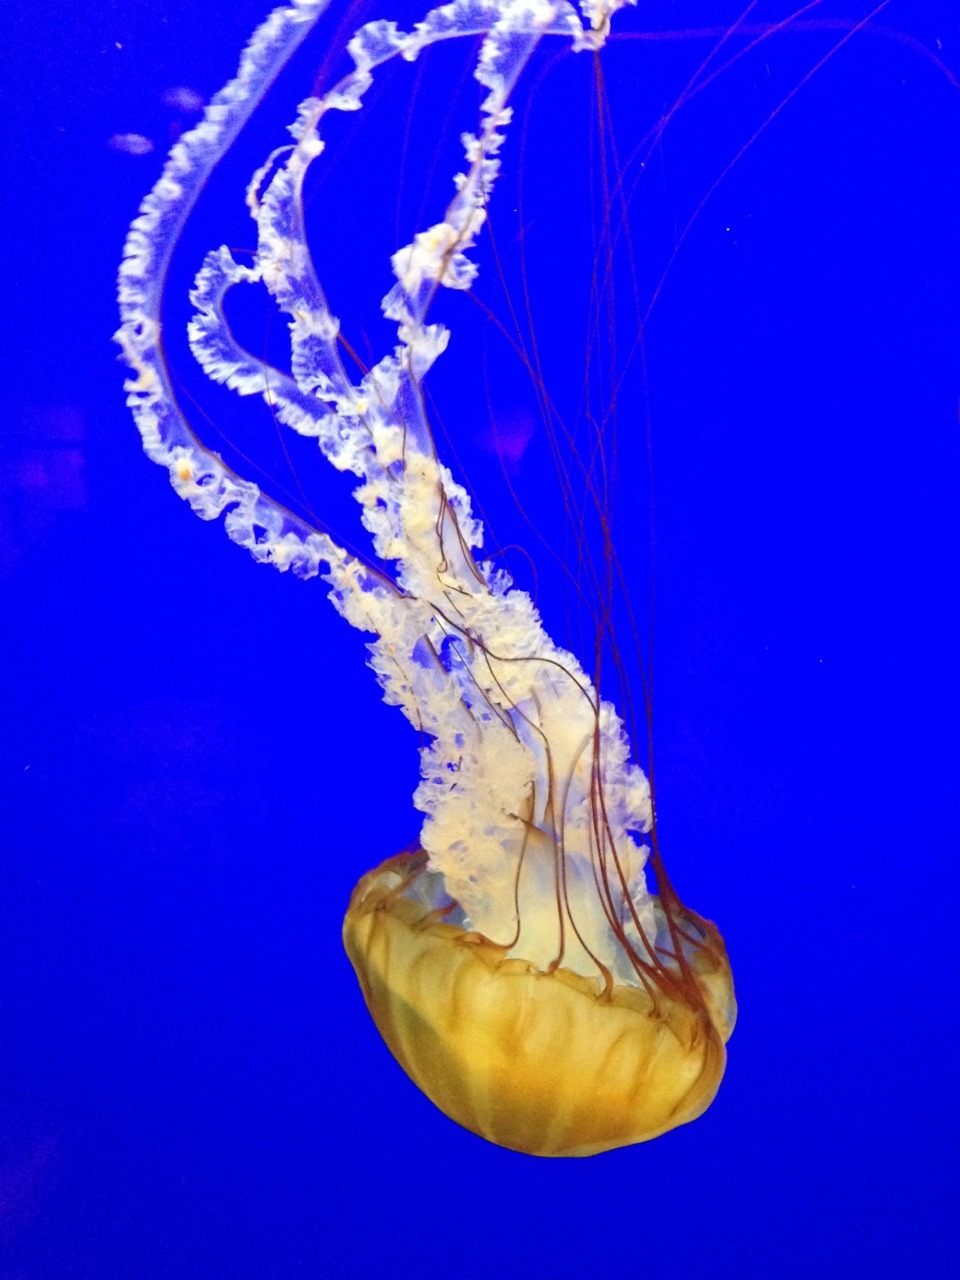 A picture I took of a jelly fish at the aquarium today (: today was such a good day besides almost dying on a boat… (: